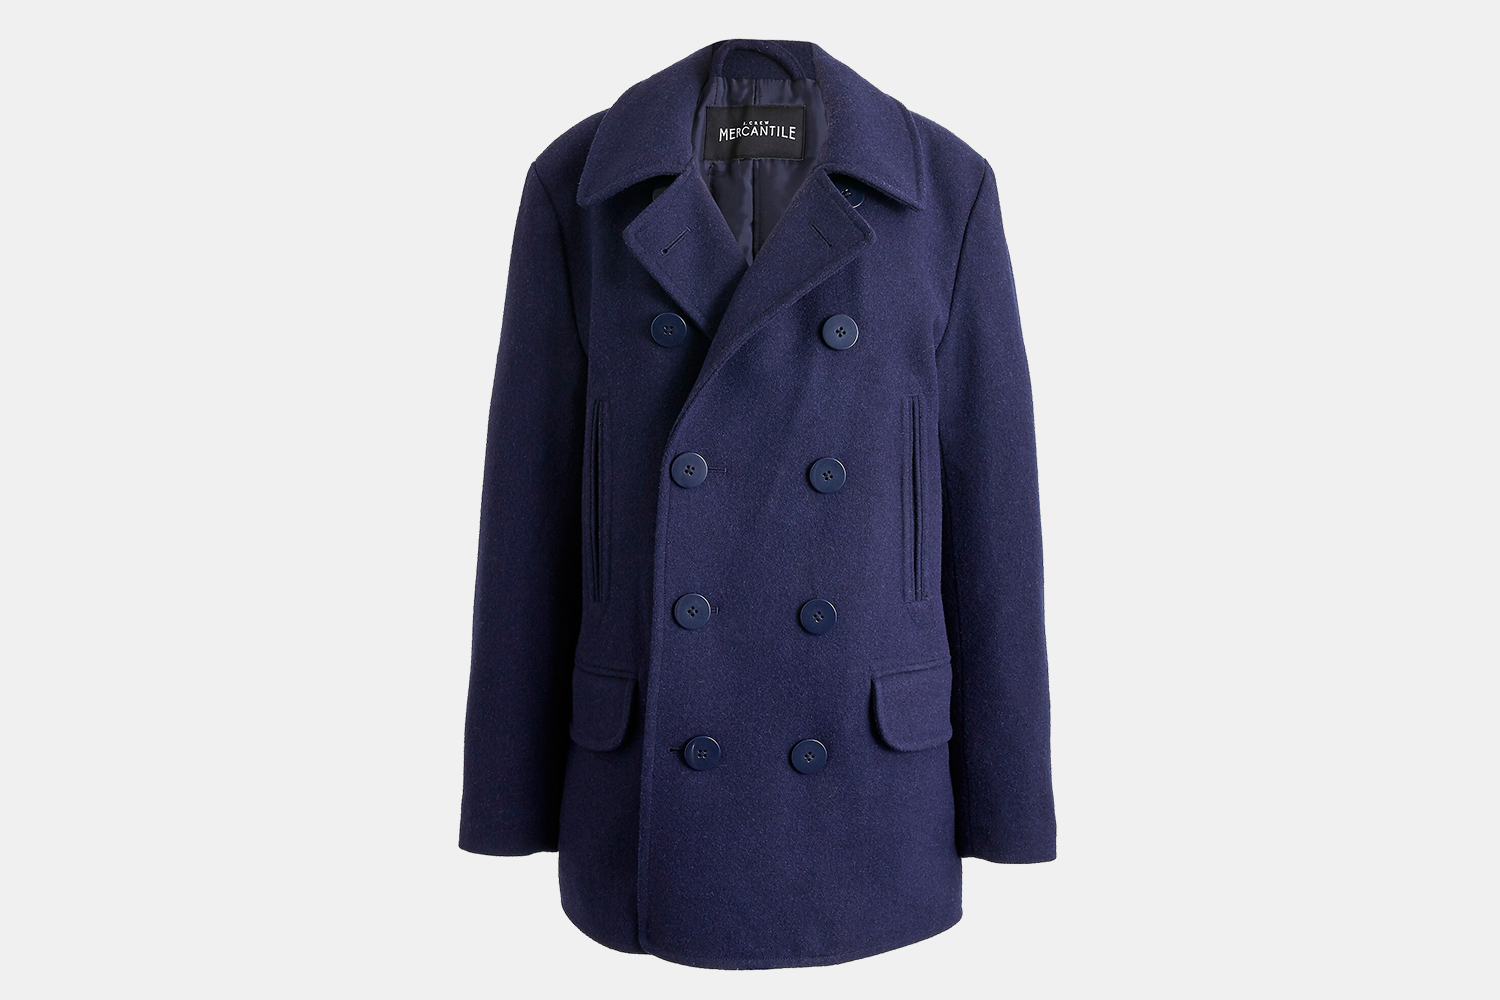 J.Crew Factory Men's Classic Peacoat Sale